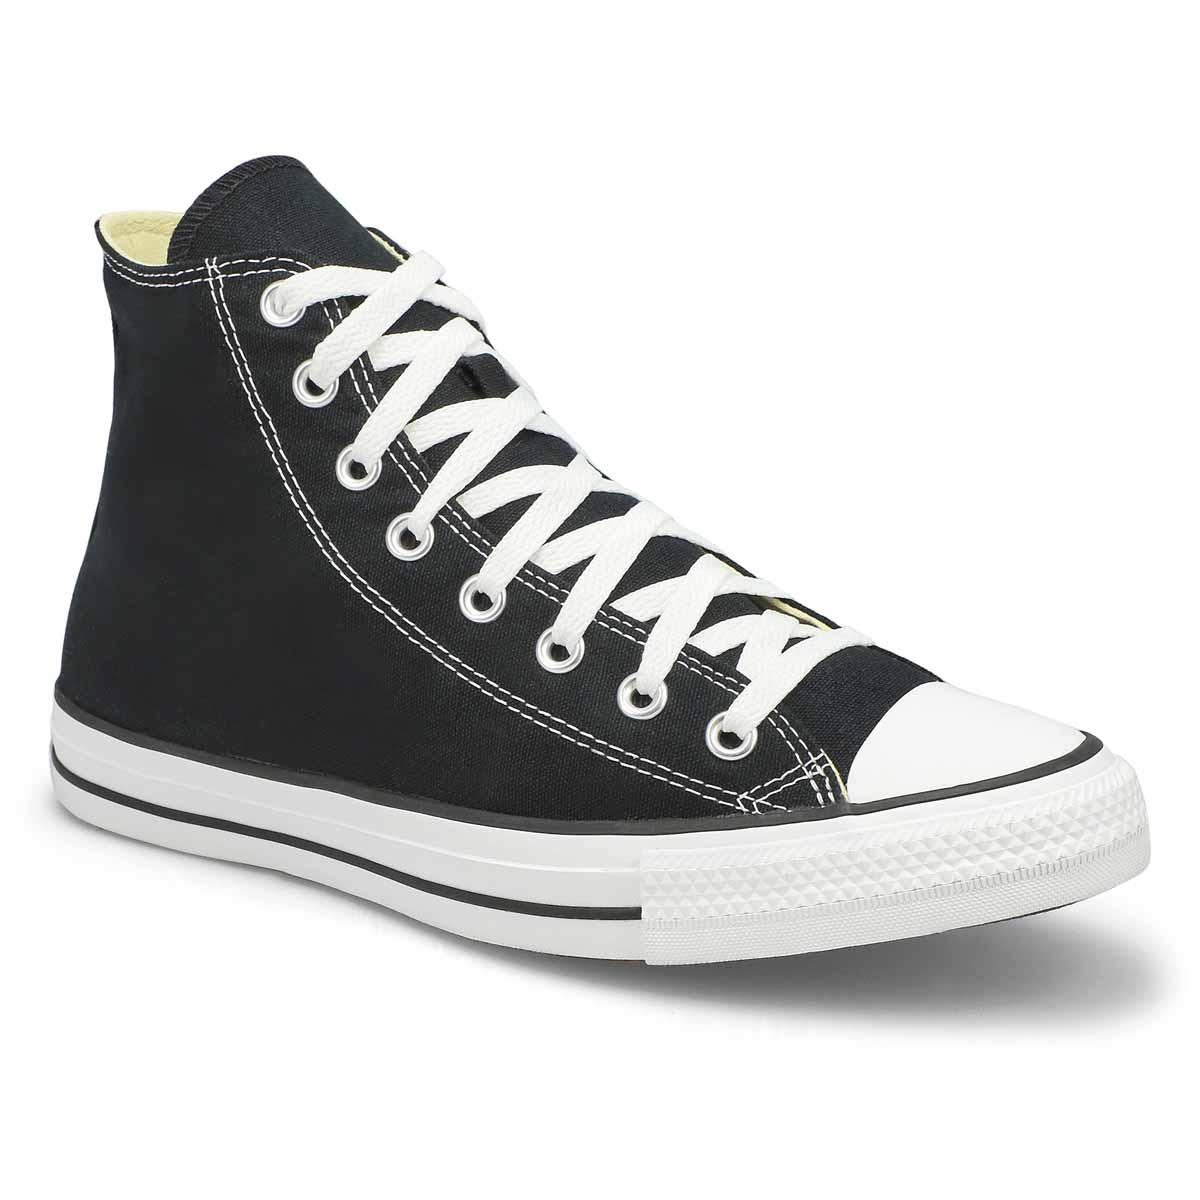 Mns CT All Star Core Hi blk sneaker